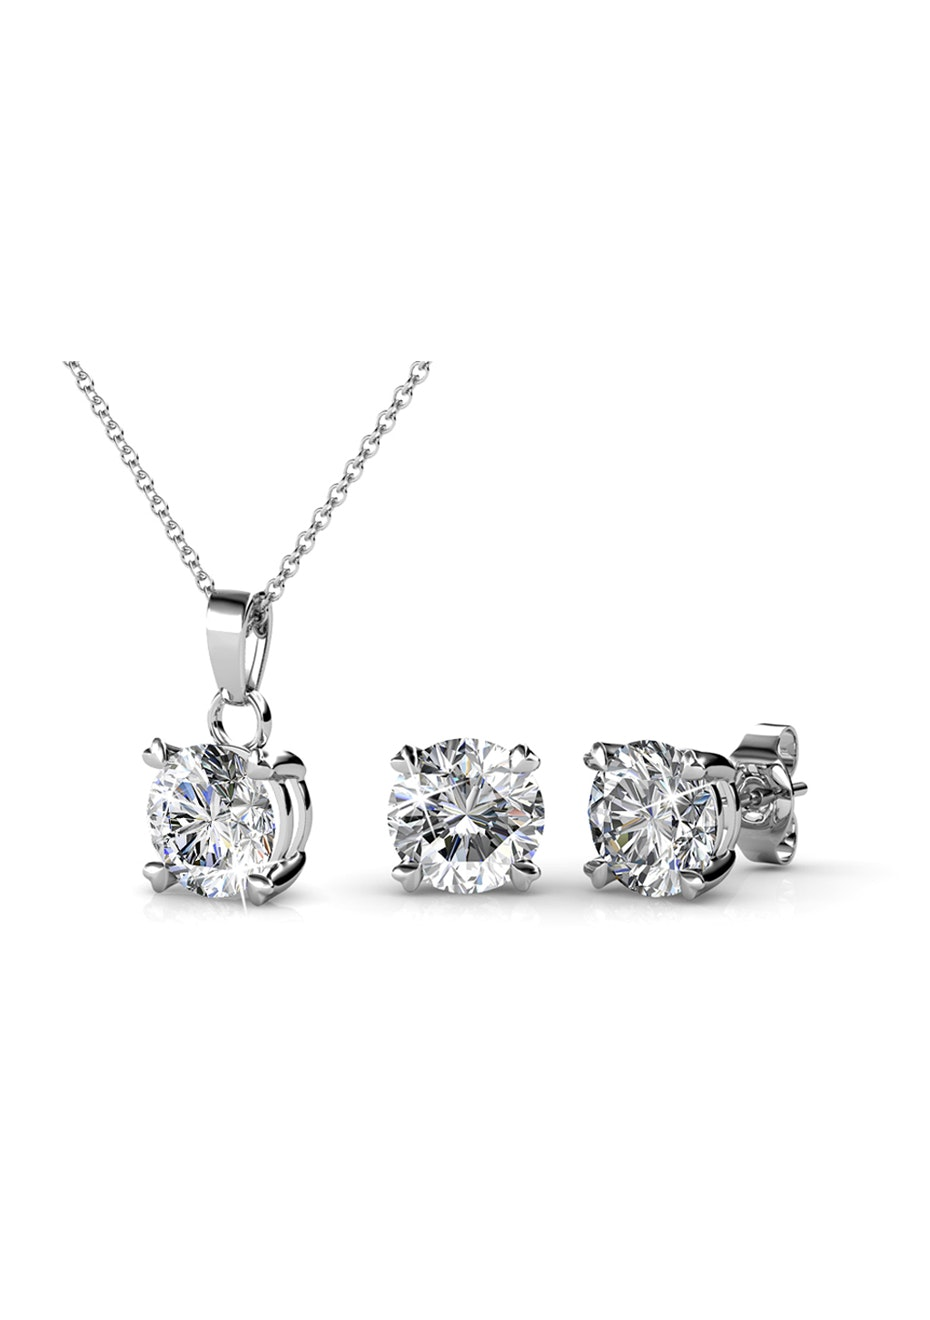 Matching Classic Elegance Set Embellished with Crystals from Swarovski